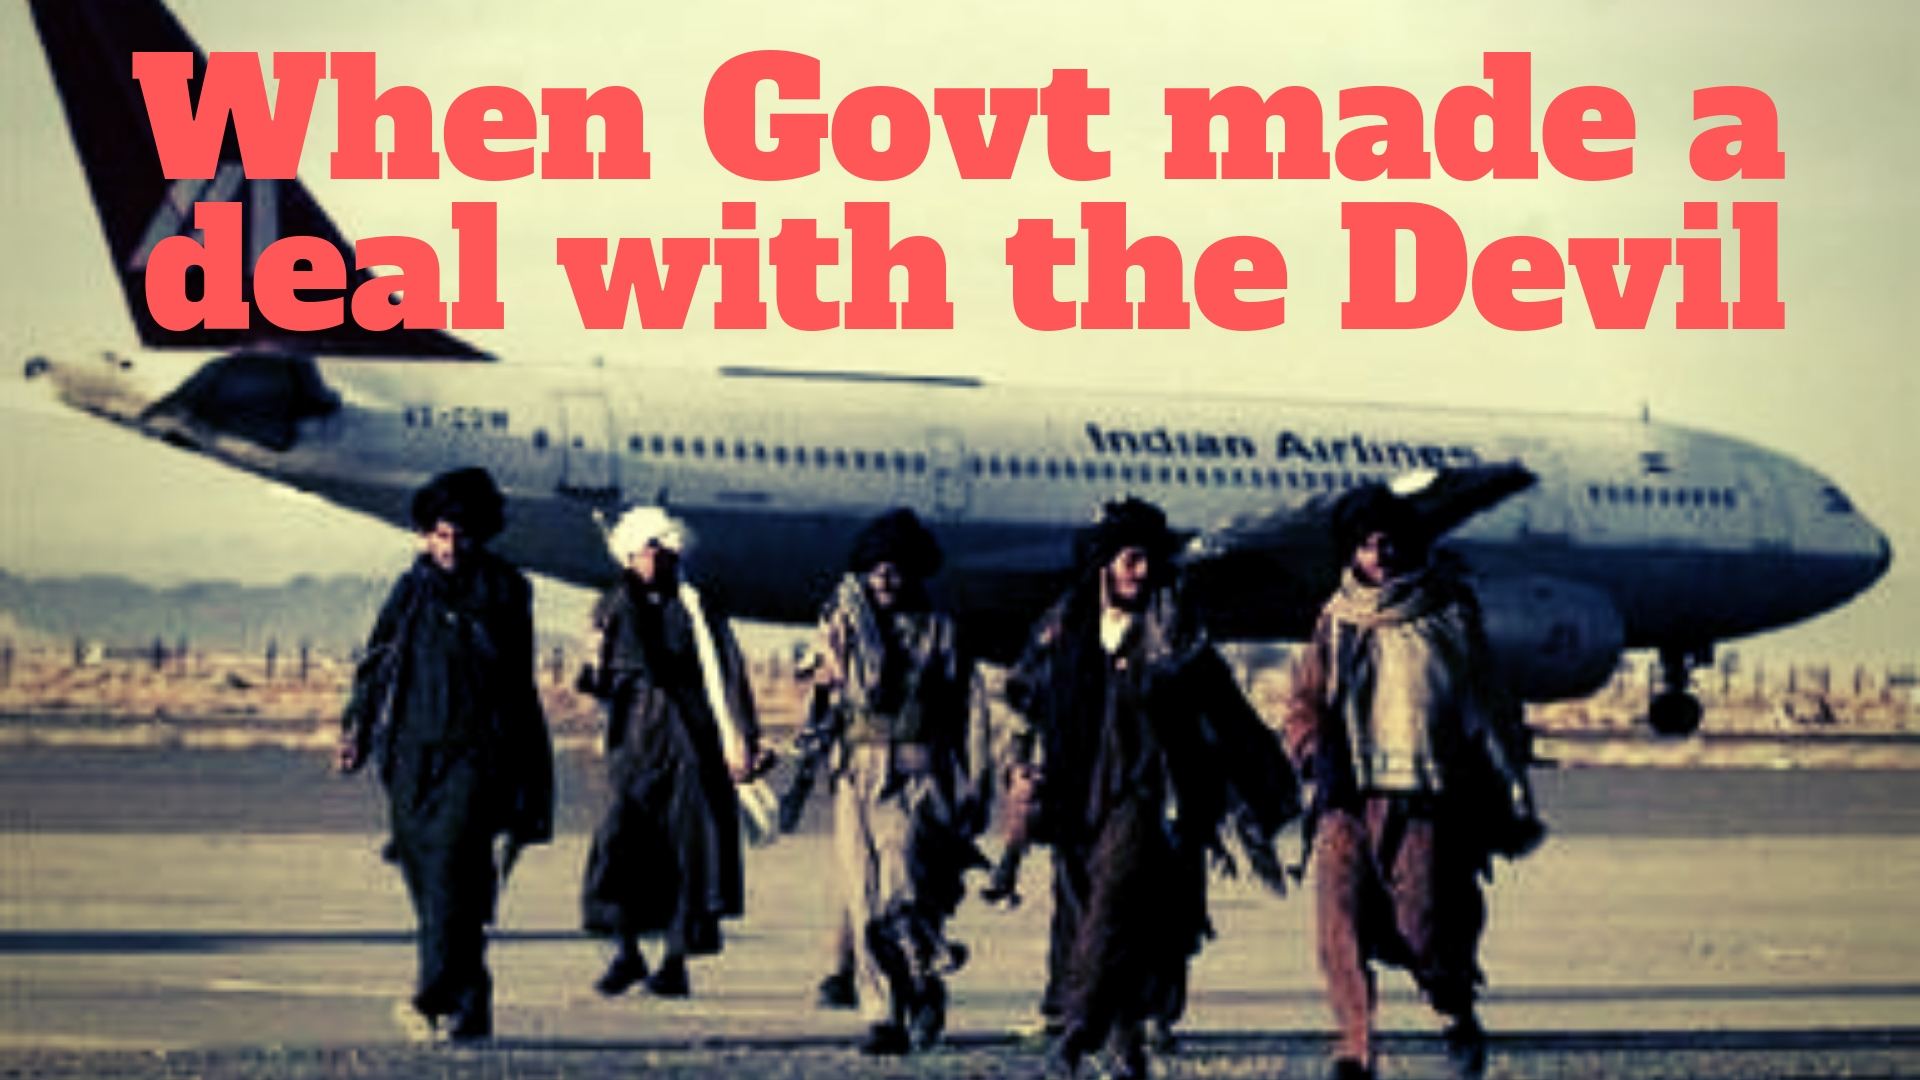 When Govt made a deal with the Devil - Guru Shetty